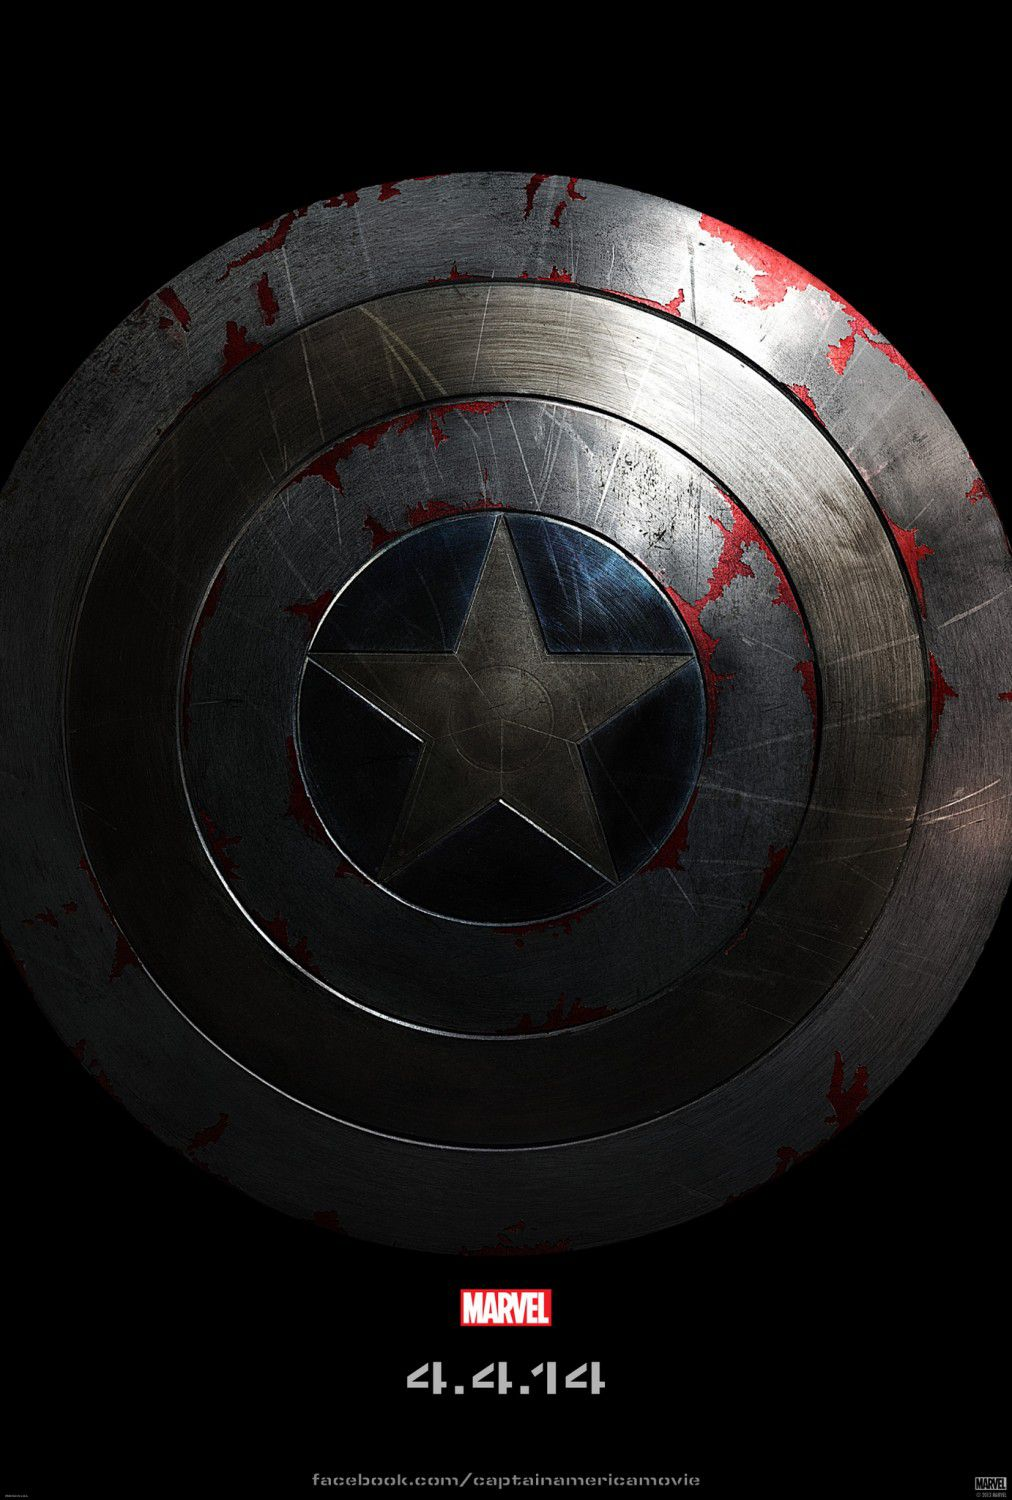 Film - Captain America 2 - the Winter Soldier - Capitan America - scudo - shield